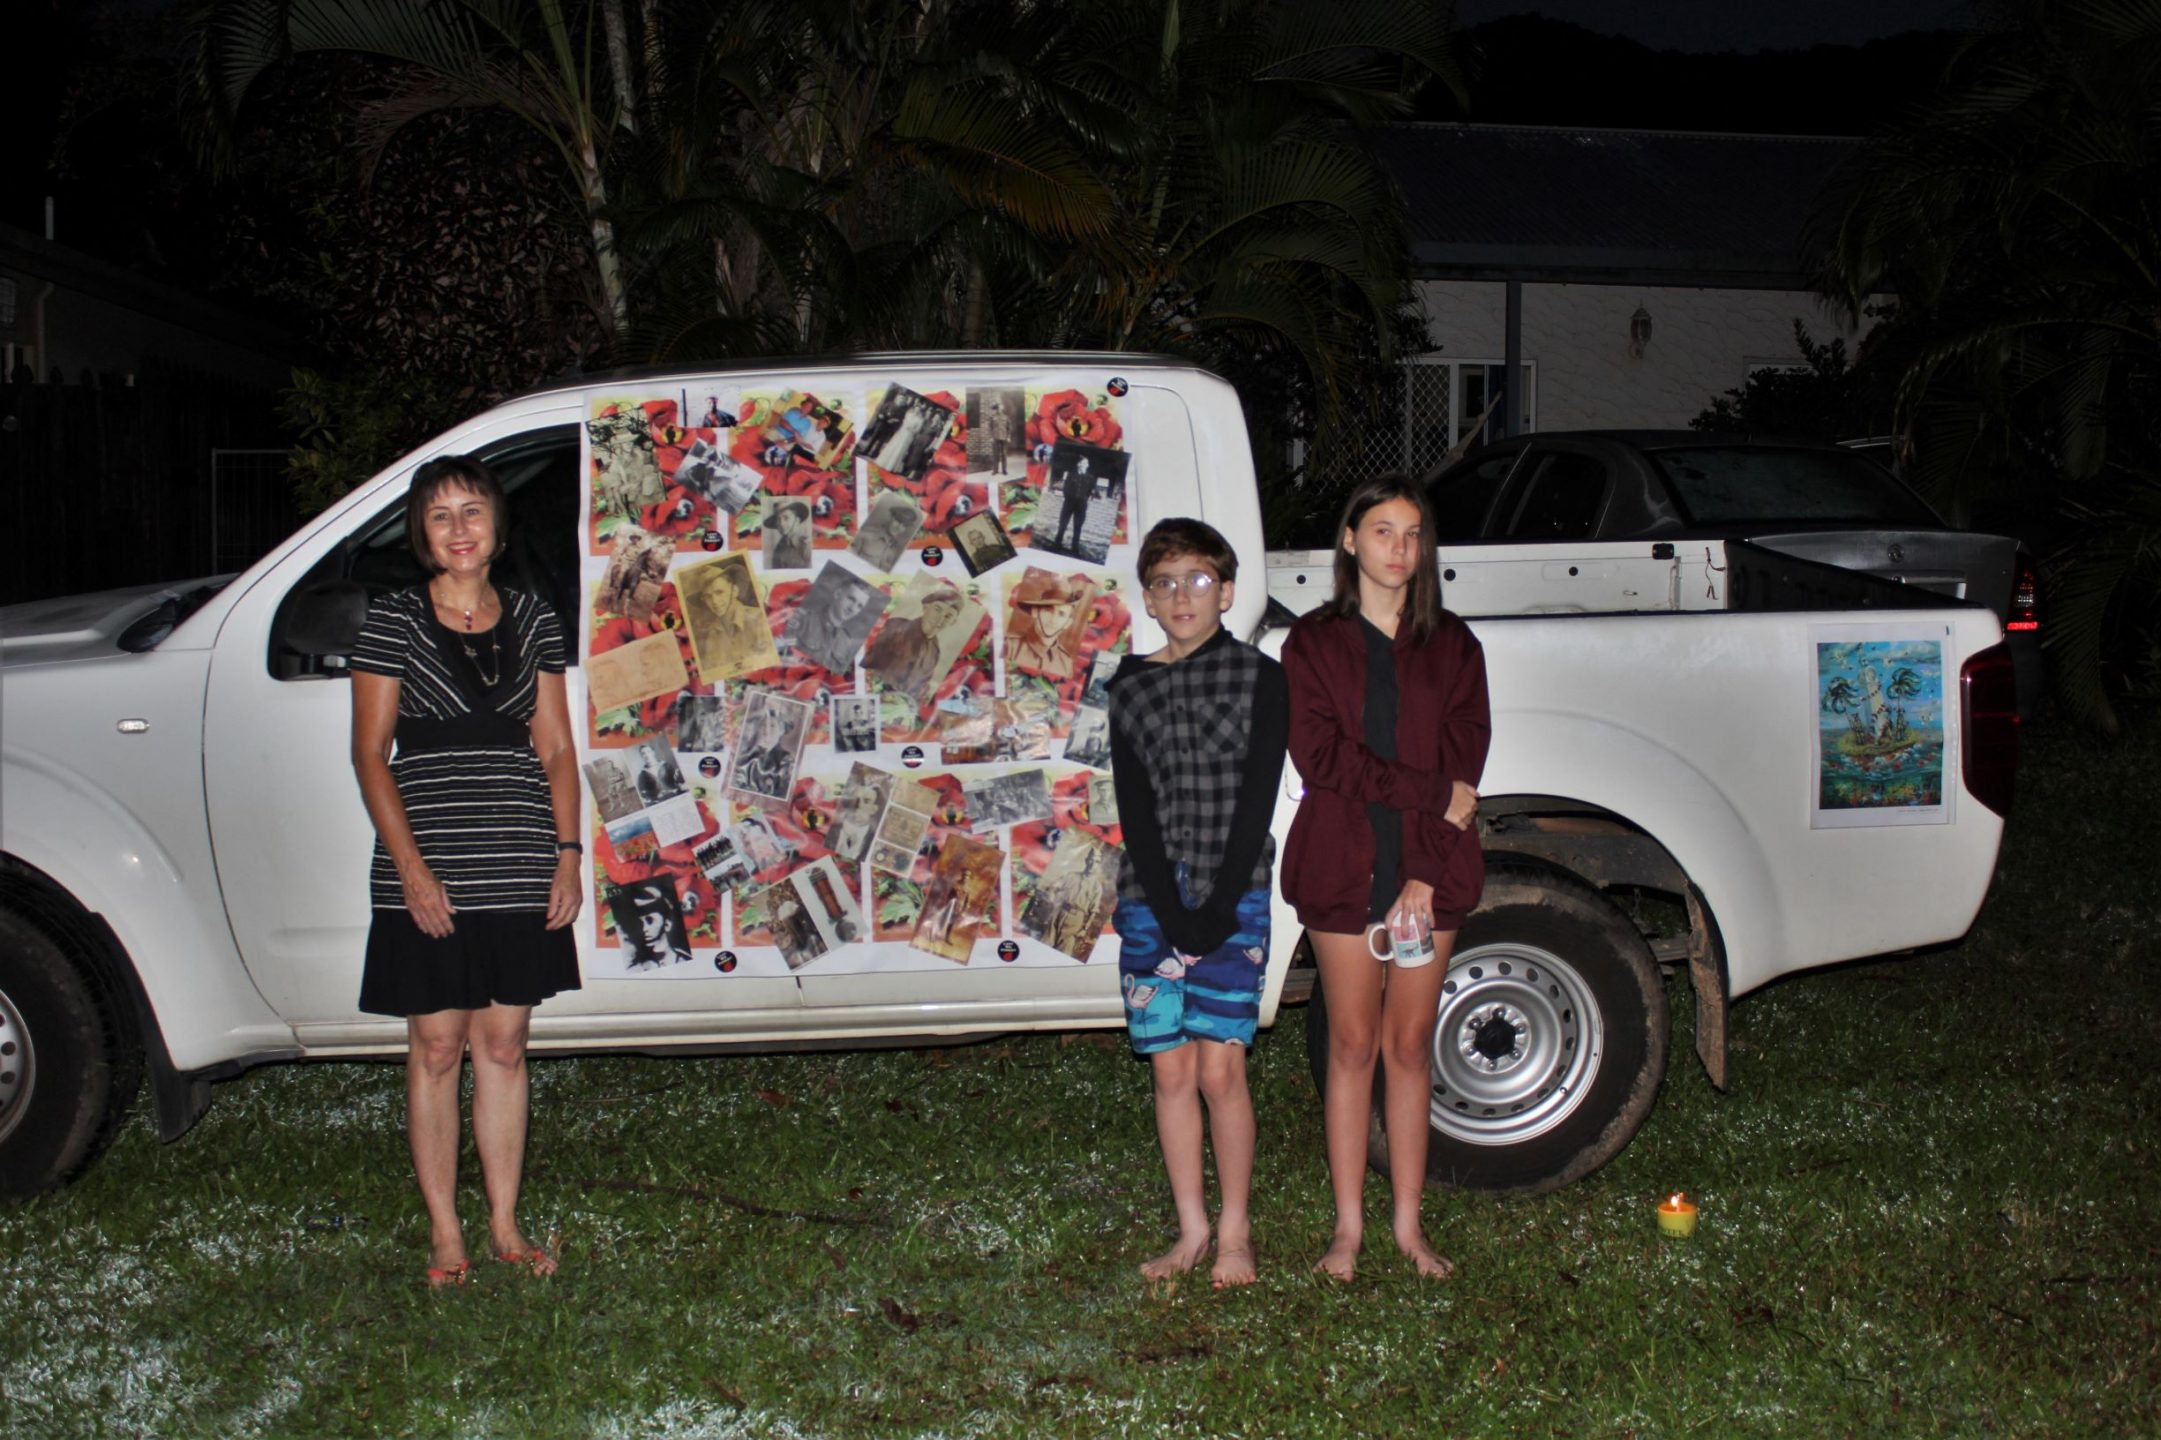 Woman, boy and girl standing beside a vehicle with collage attached to its side. Taken before dawn.